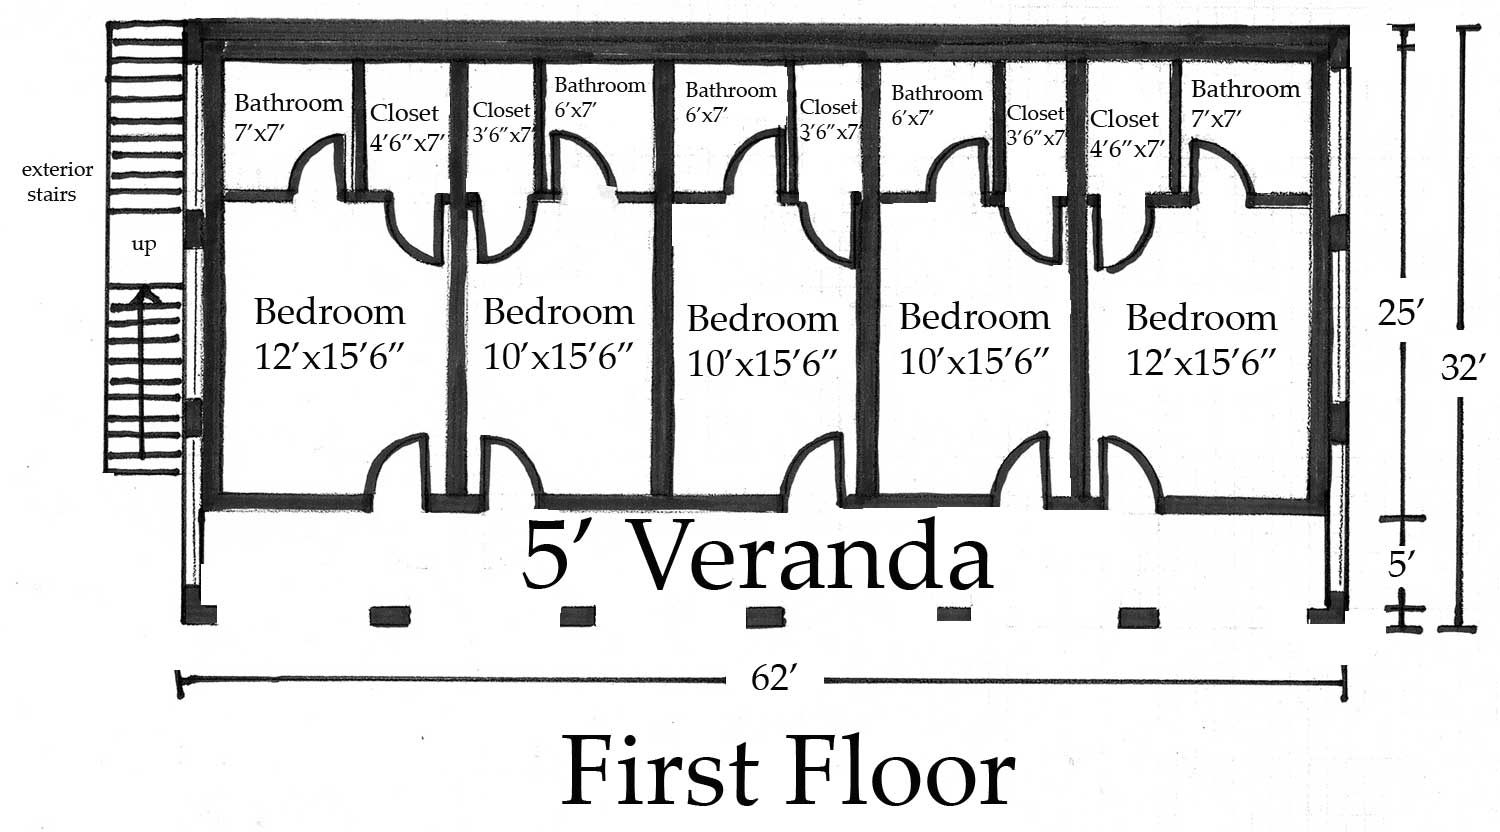 Guest house floor plans guest cottages floor plans compact Guest house layout plan